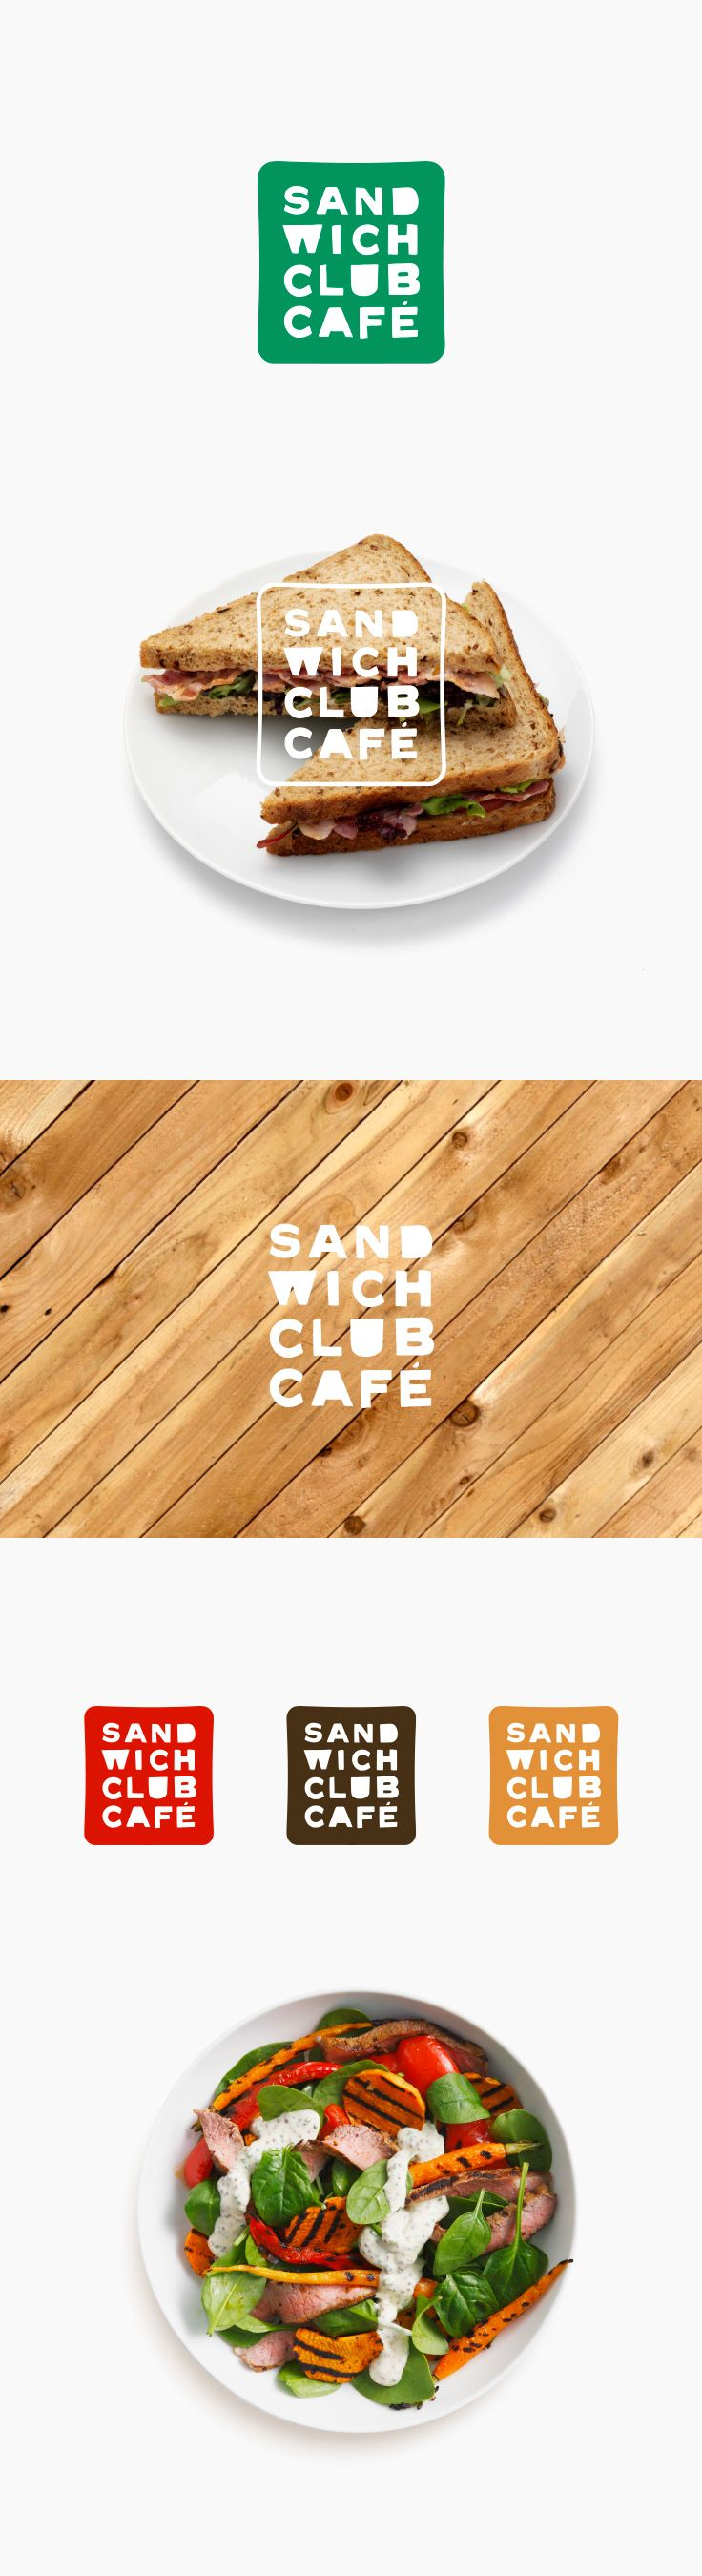 Sandwich Club Cafe new logo design by Soda Comunicacion a Madrid based studio.